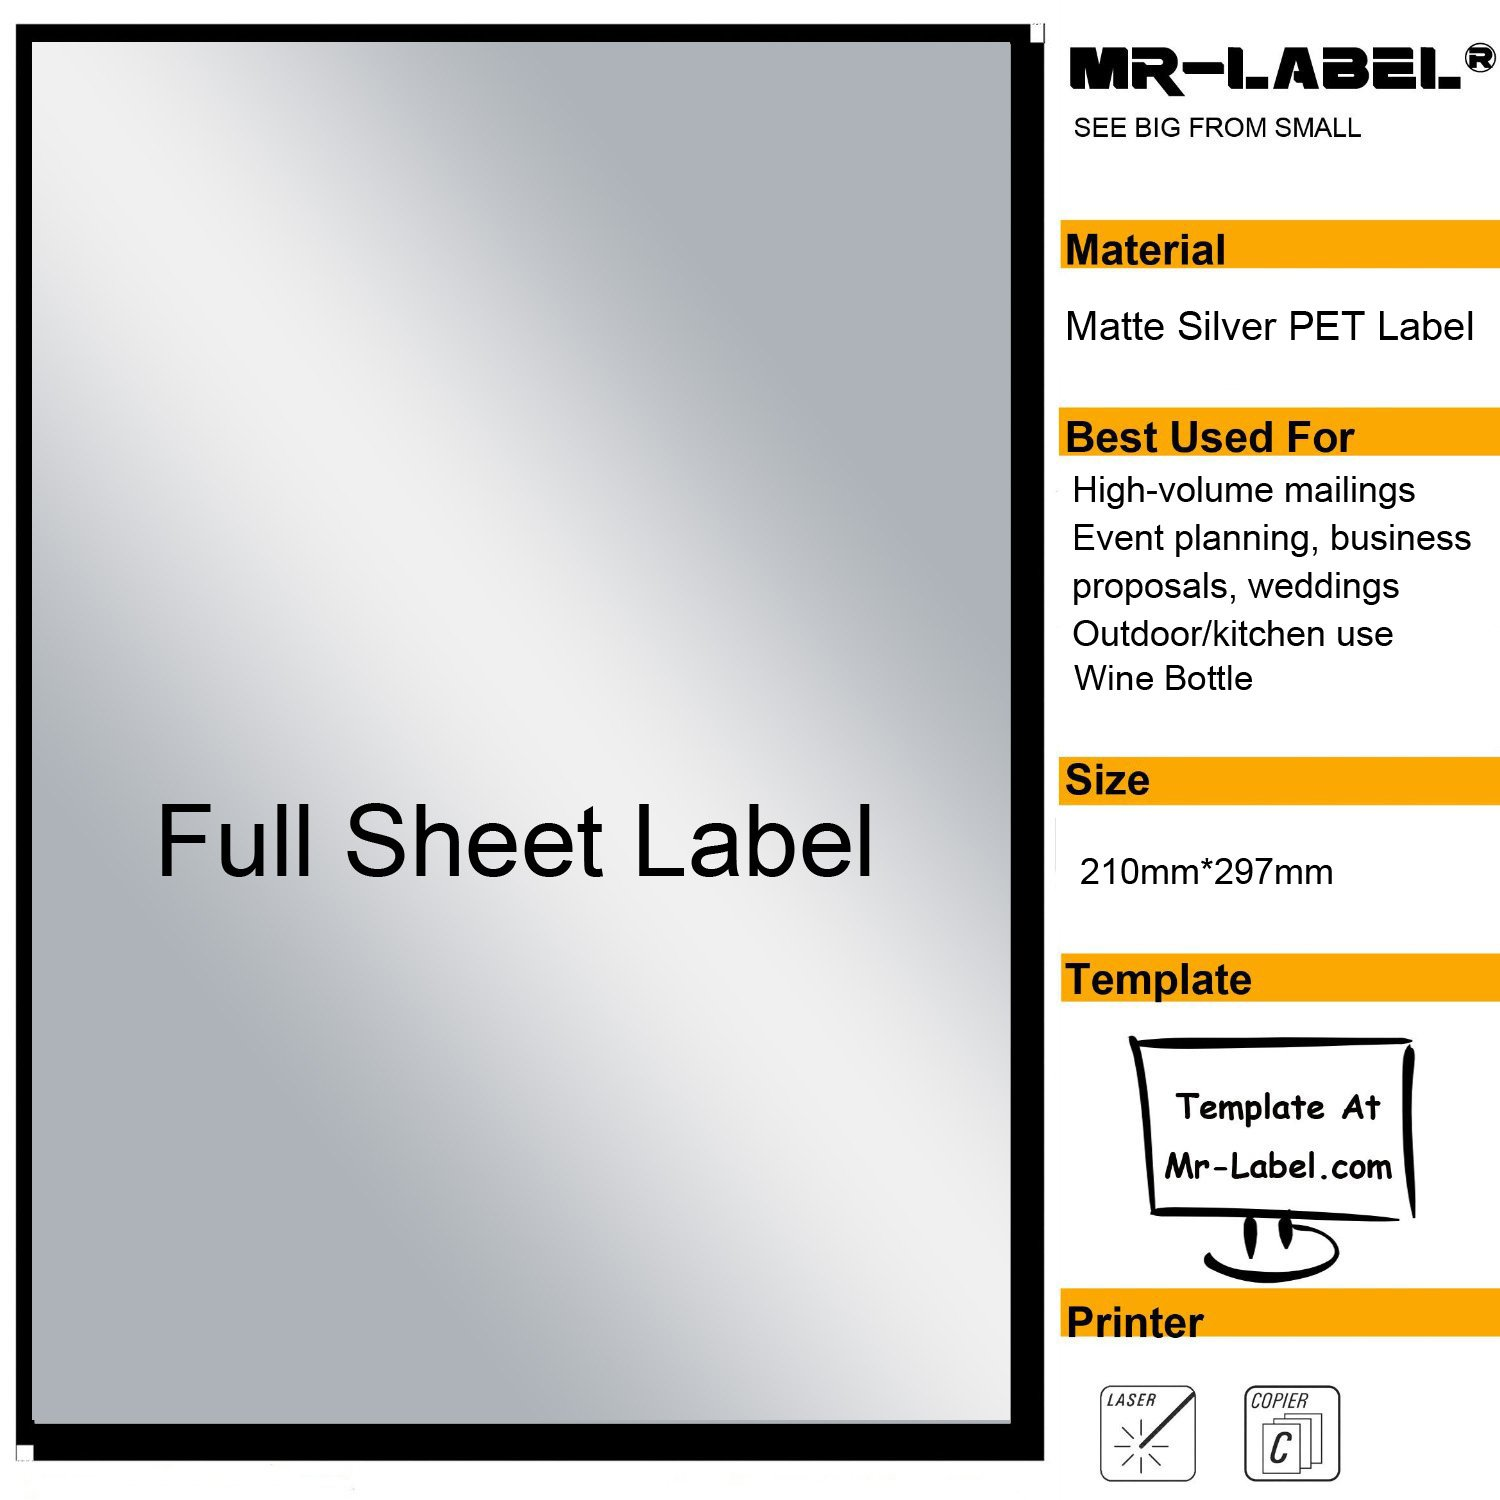 Mr-Label® Extra Large Full-Sheet Matte Silver Label Adhesive Labels – Scratchproof Waterproof Stickers for Company Information | Wine Bottle - Laser Print Only (25 Sheets) by Mr-Label (Image #1)